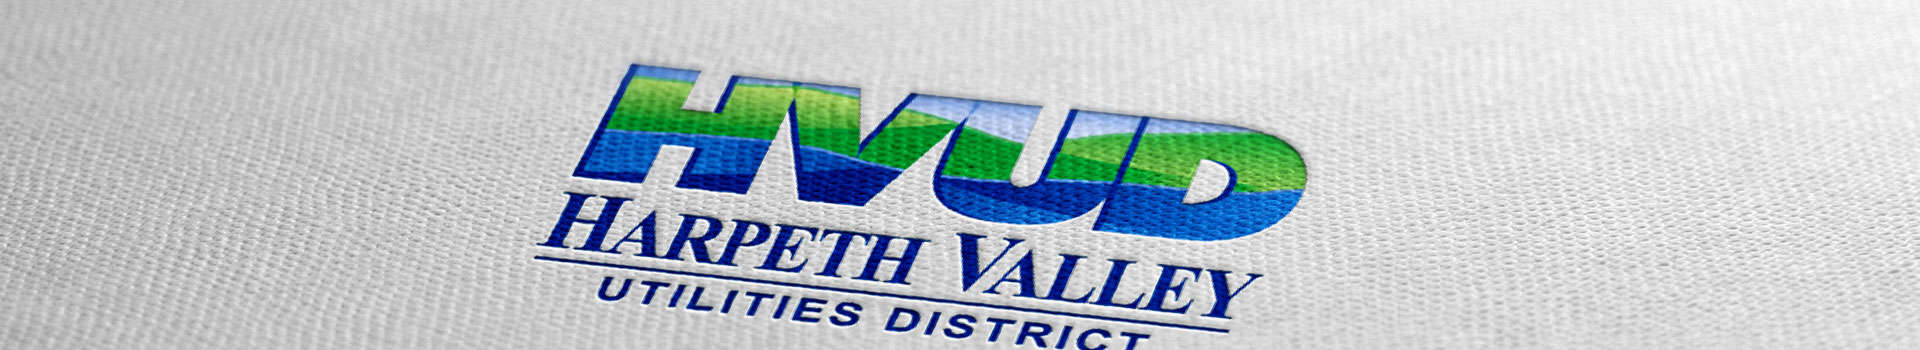 Harpeth Valley Utilities District Portfolio